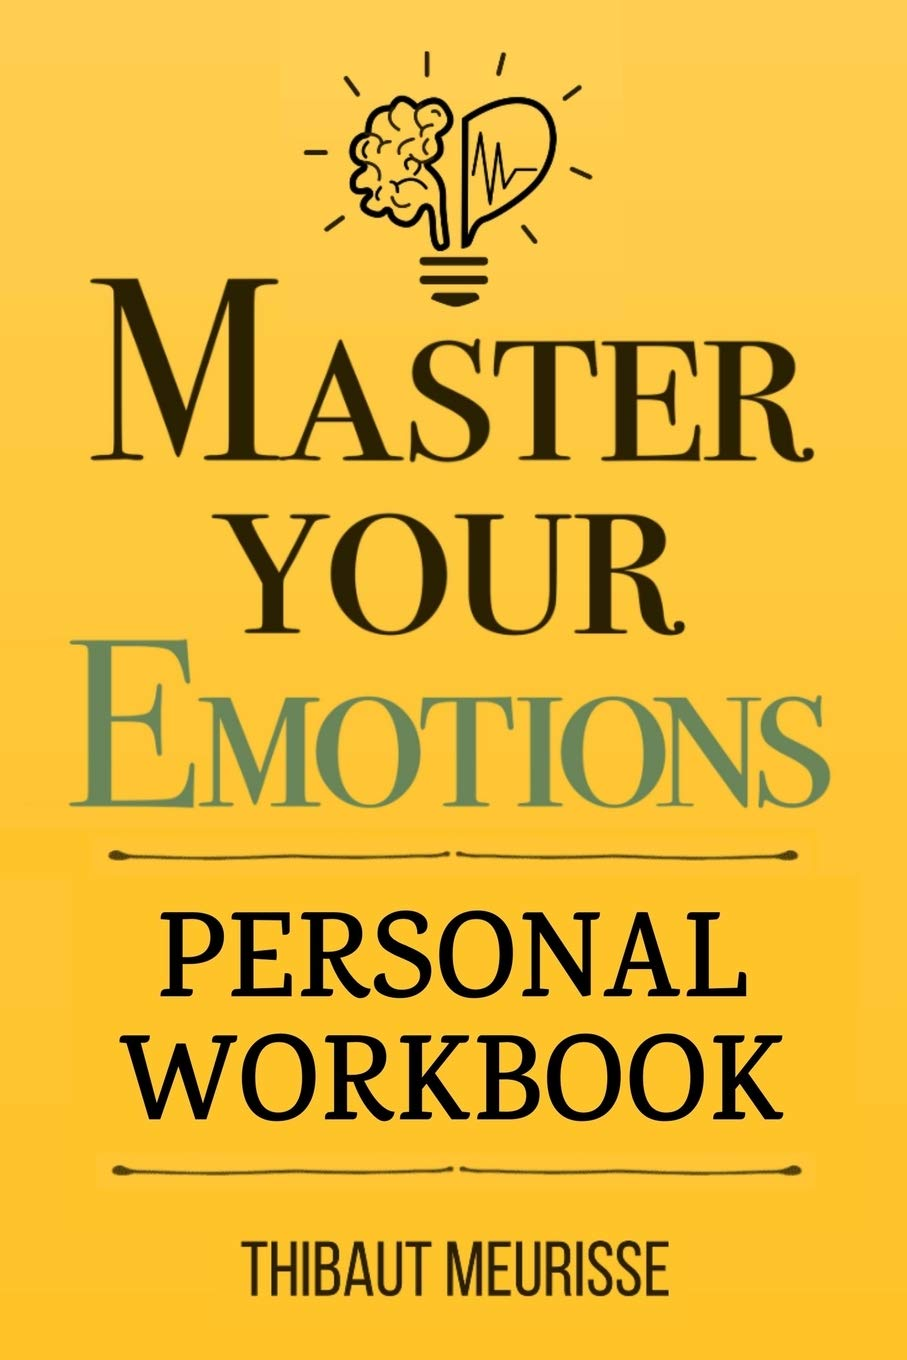 Image for Master Your Emotions: A Practical Guide to Overcome Negativity and Better Manage Your Feelings (Personal Workbook) (Mastery Series Workbooks)